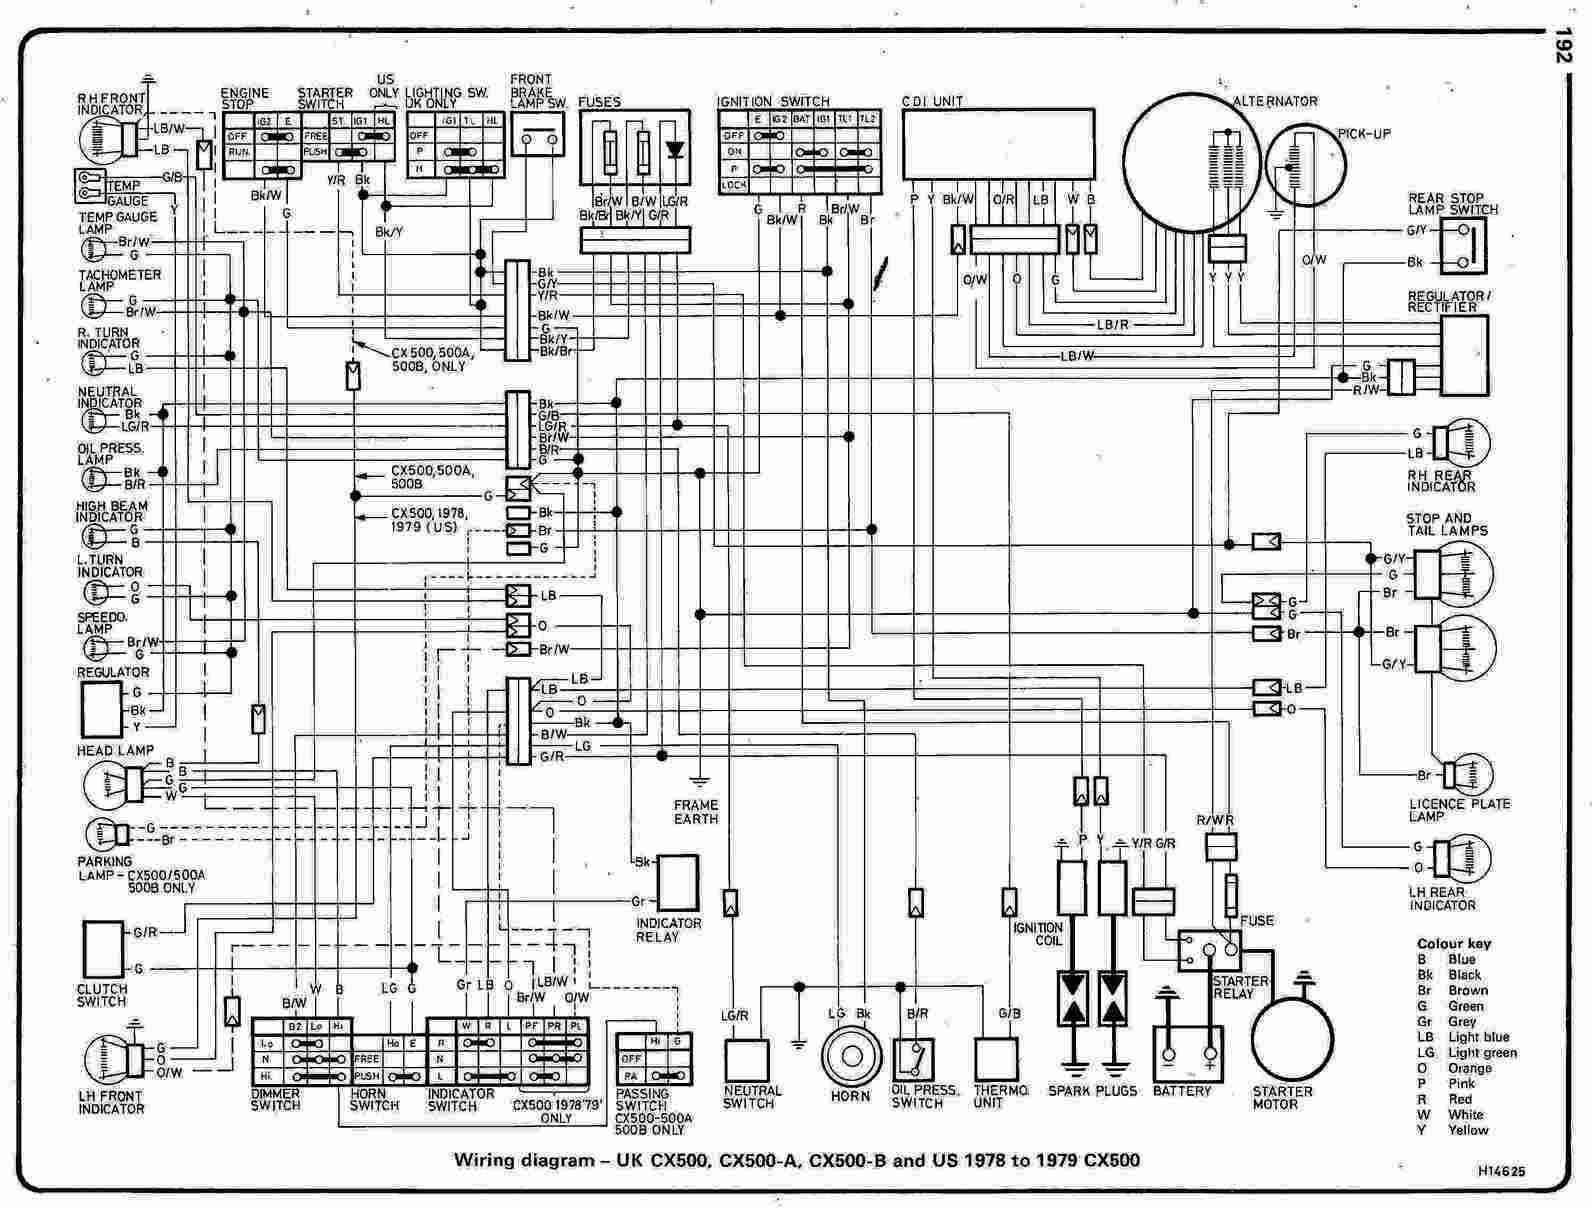 Honda CX500 Motorcycle 1978 1979 Complete Wiring Diagram